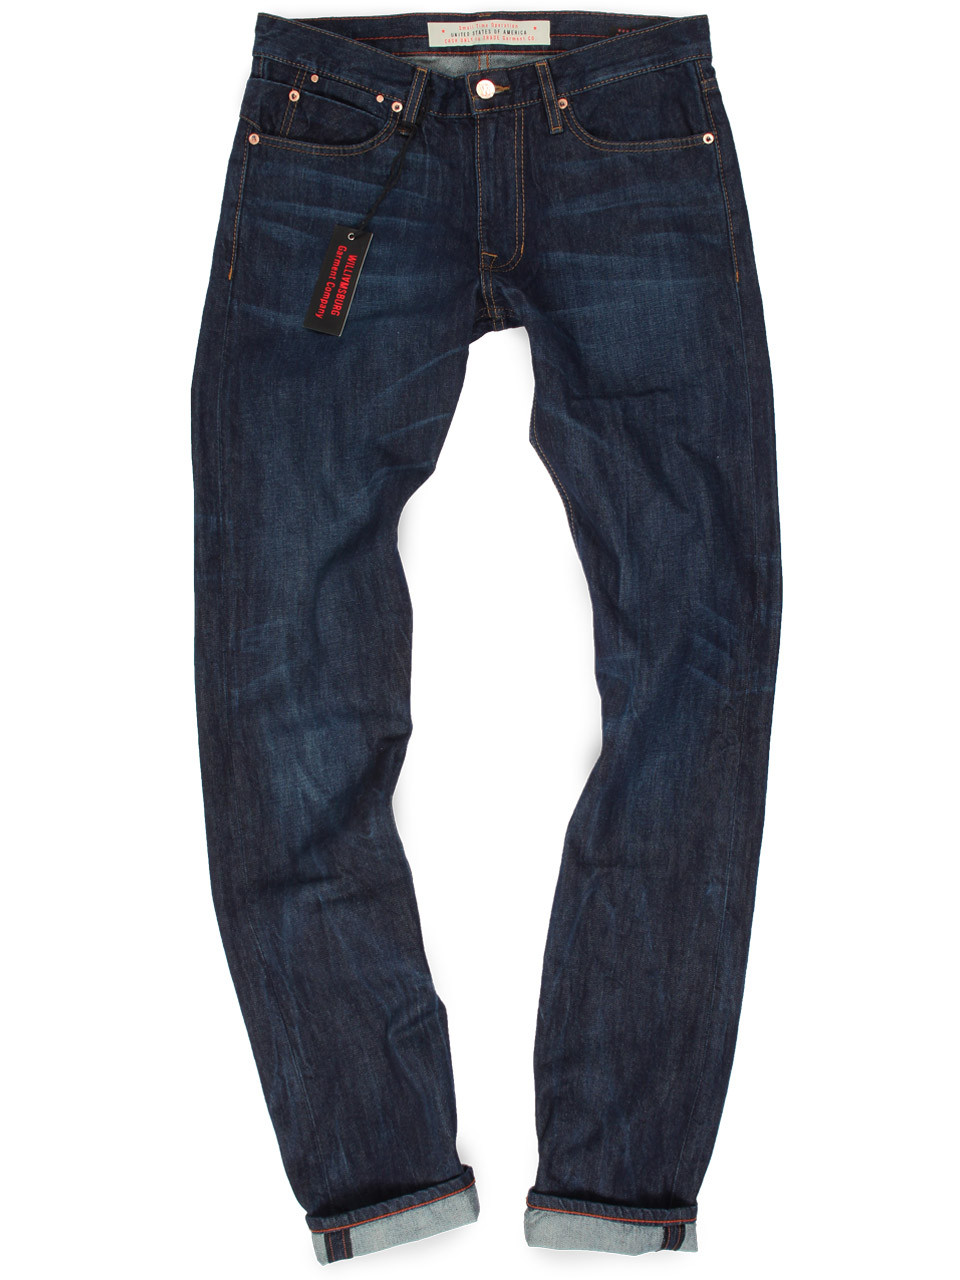 big and mens made in usa